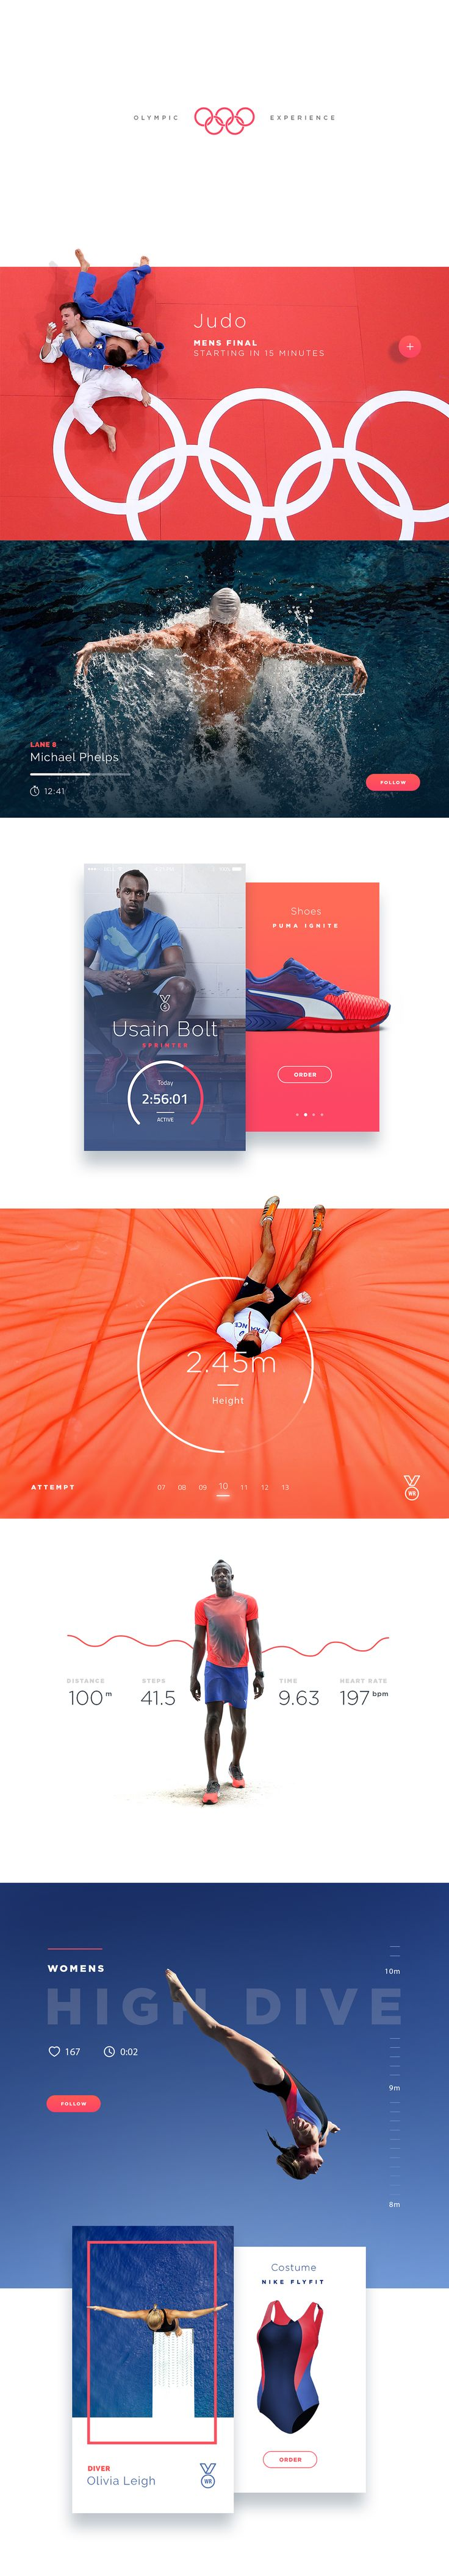 Rio Olympics Experience on Behance